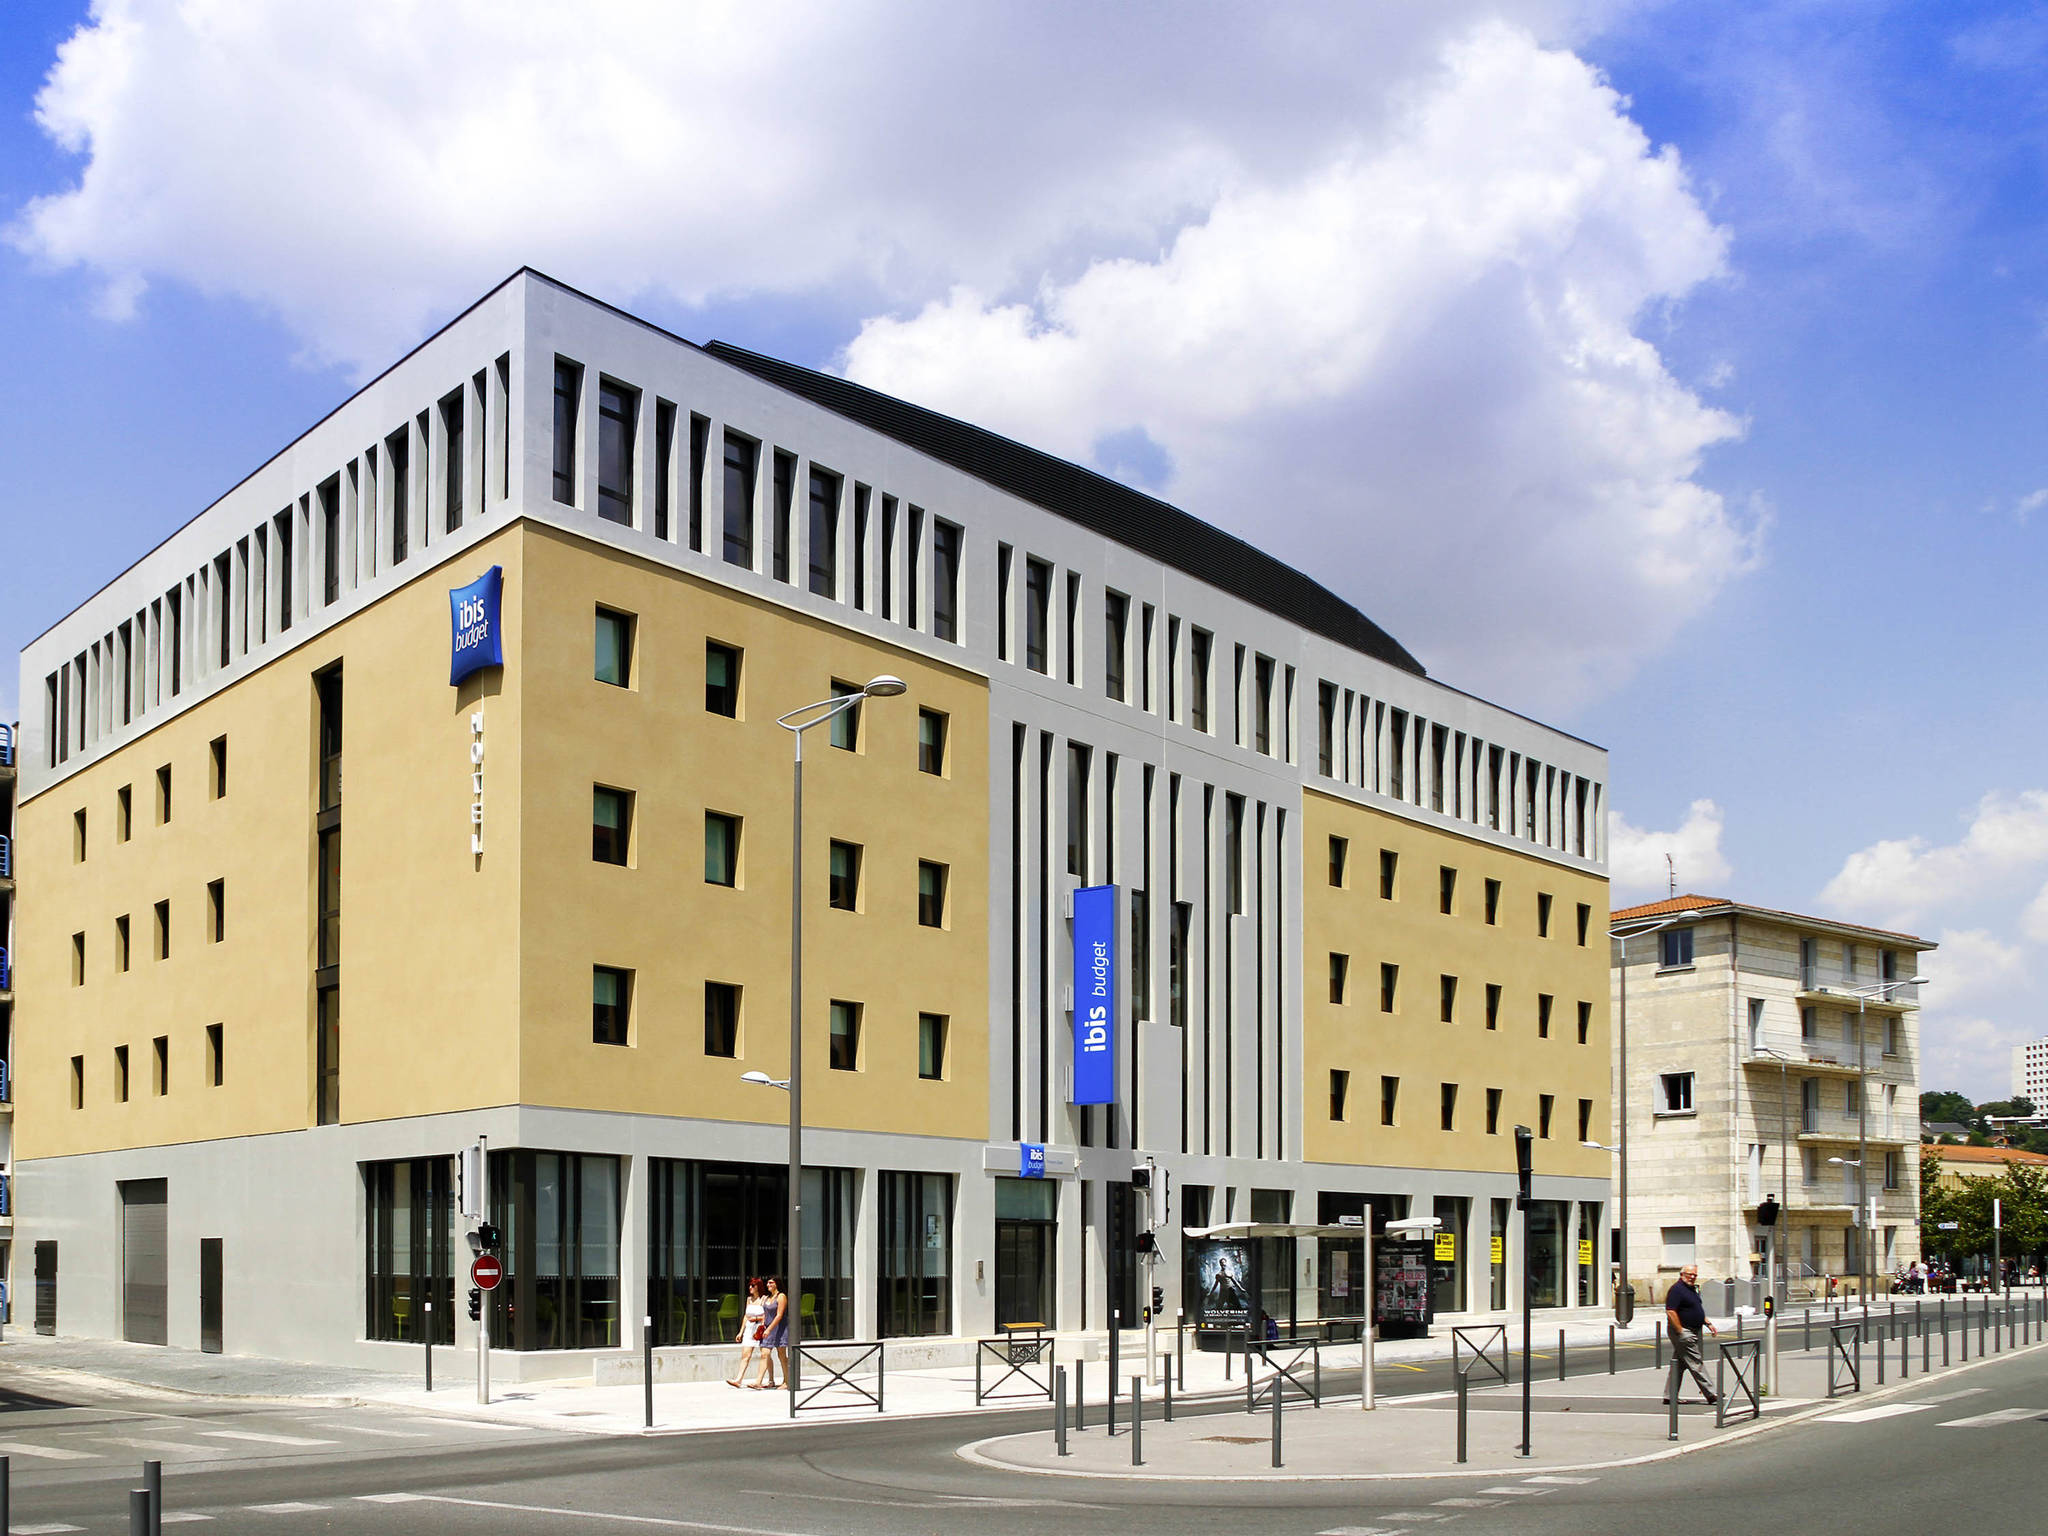 Hotel in poitiers ibis budget poitiers centre gare for Hotels ibis france